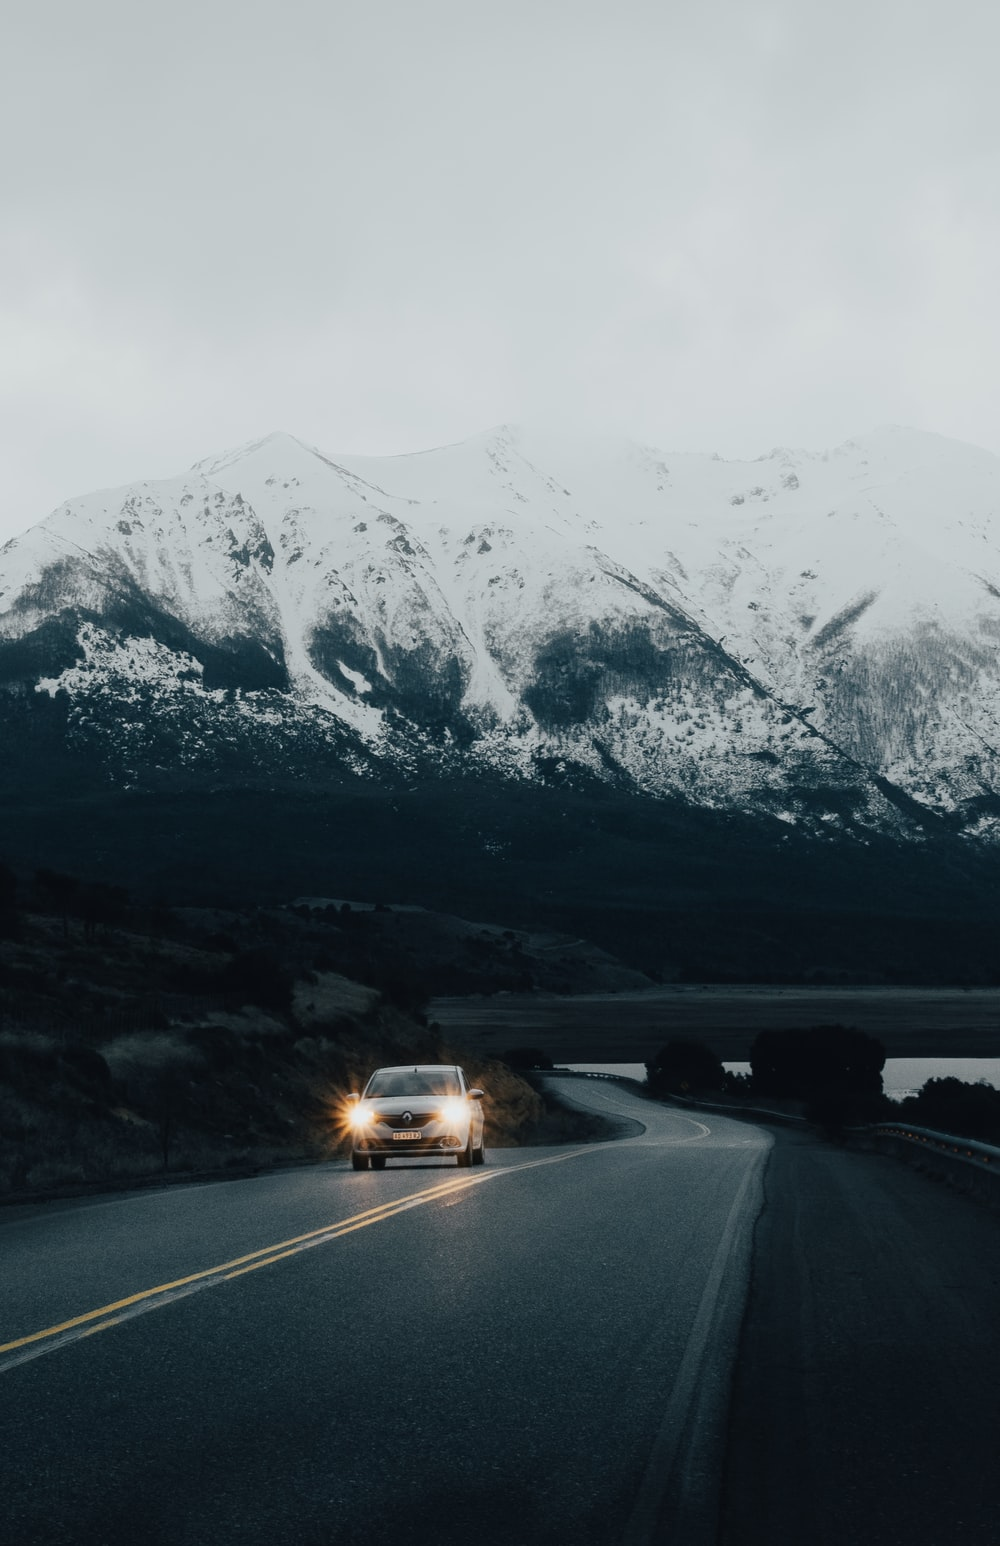 white vehicle on road viewing mountain covered with snow during daytime